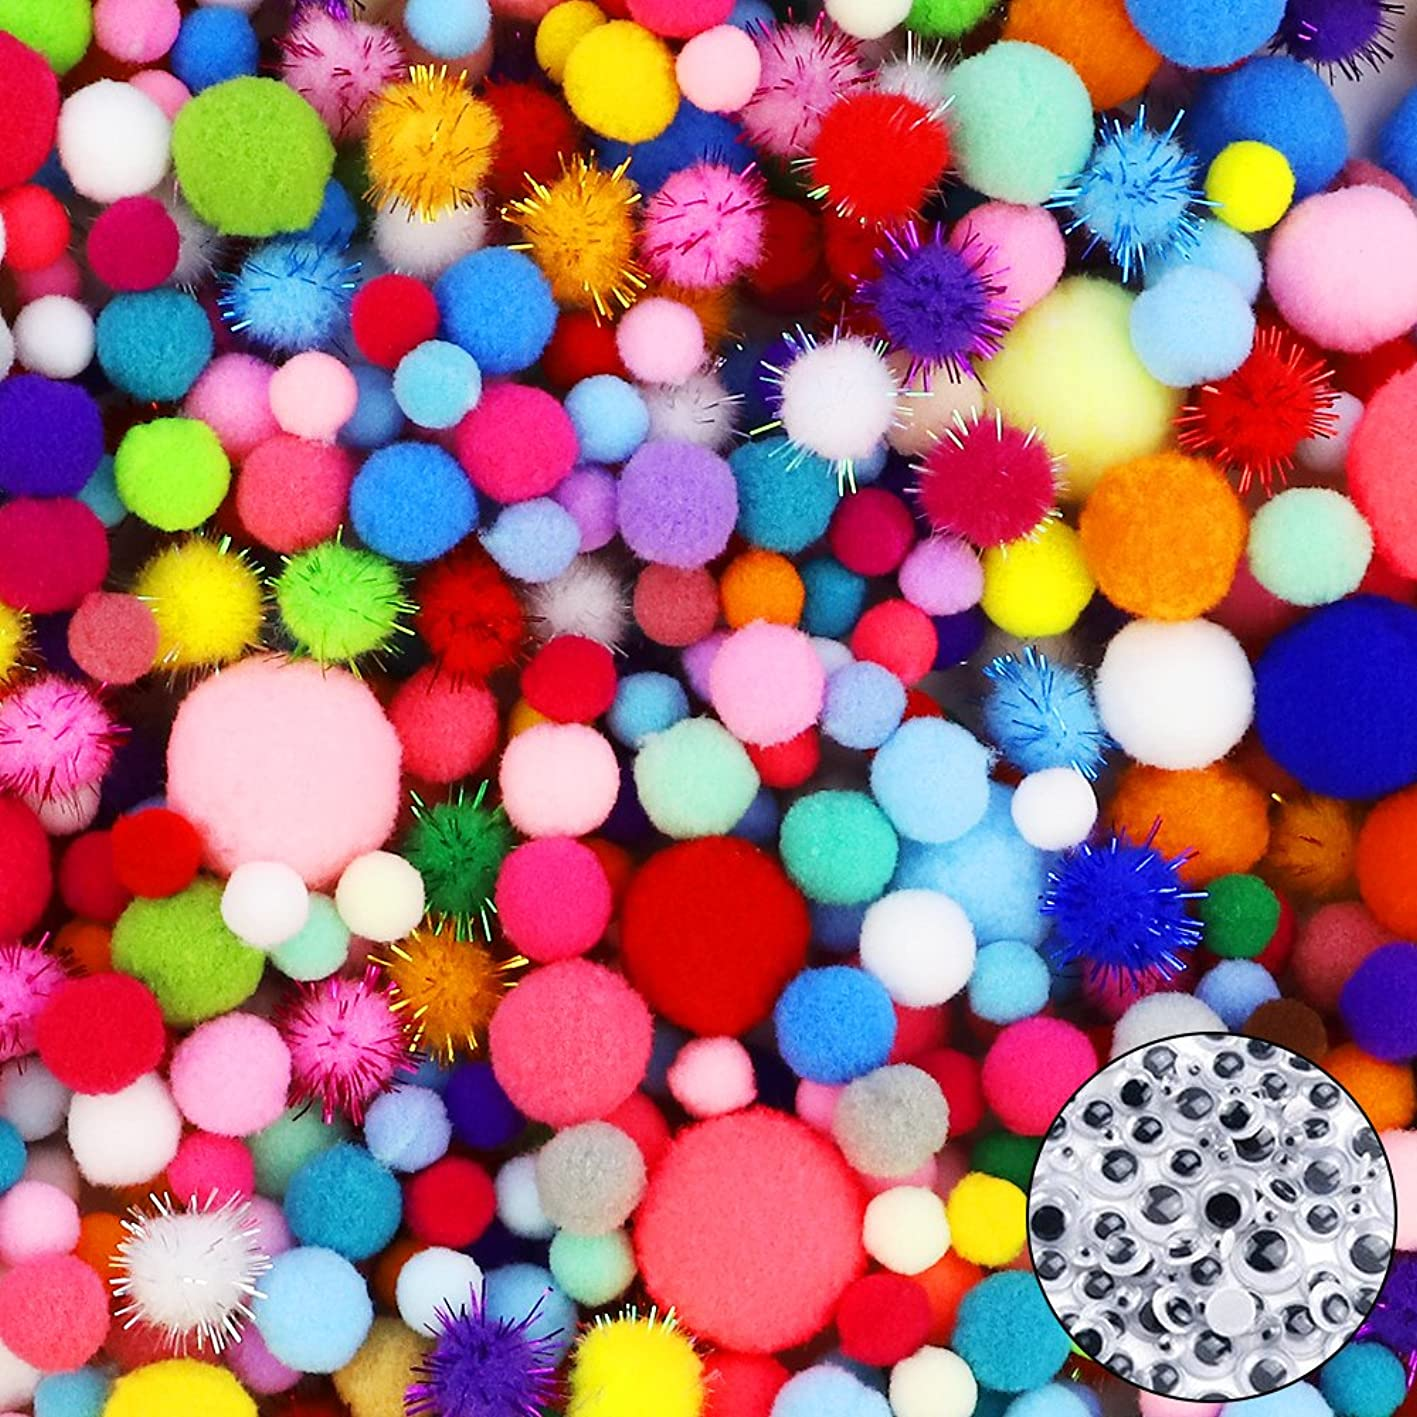 HEHALI 1600pcs Pom Poms Set,Including 1500pcs Pom Poms Craft Assorted Sizes and Colors with 100pcs Wiggle Googly Eyes for Hobby Supplies and Creative Craft DIY Material (1600 pcs) sxcmpgjfcqj309